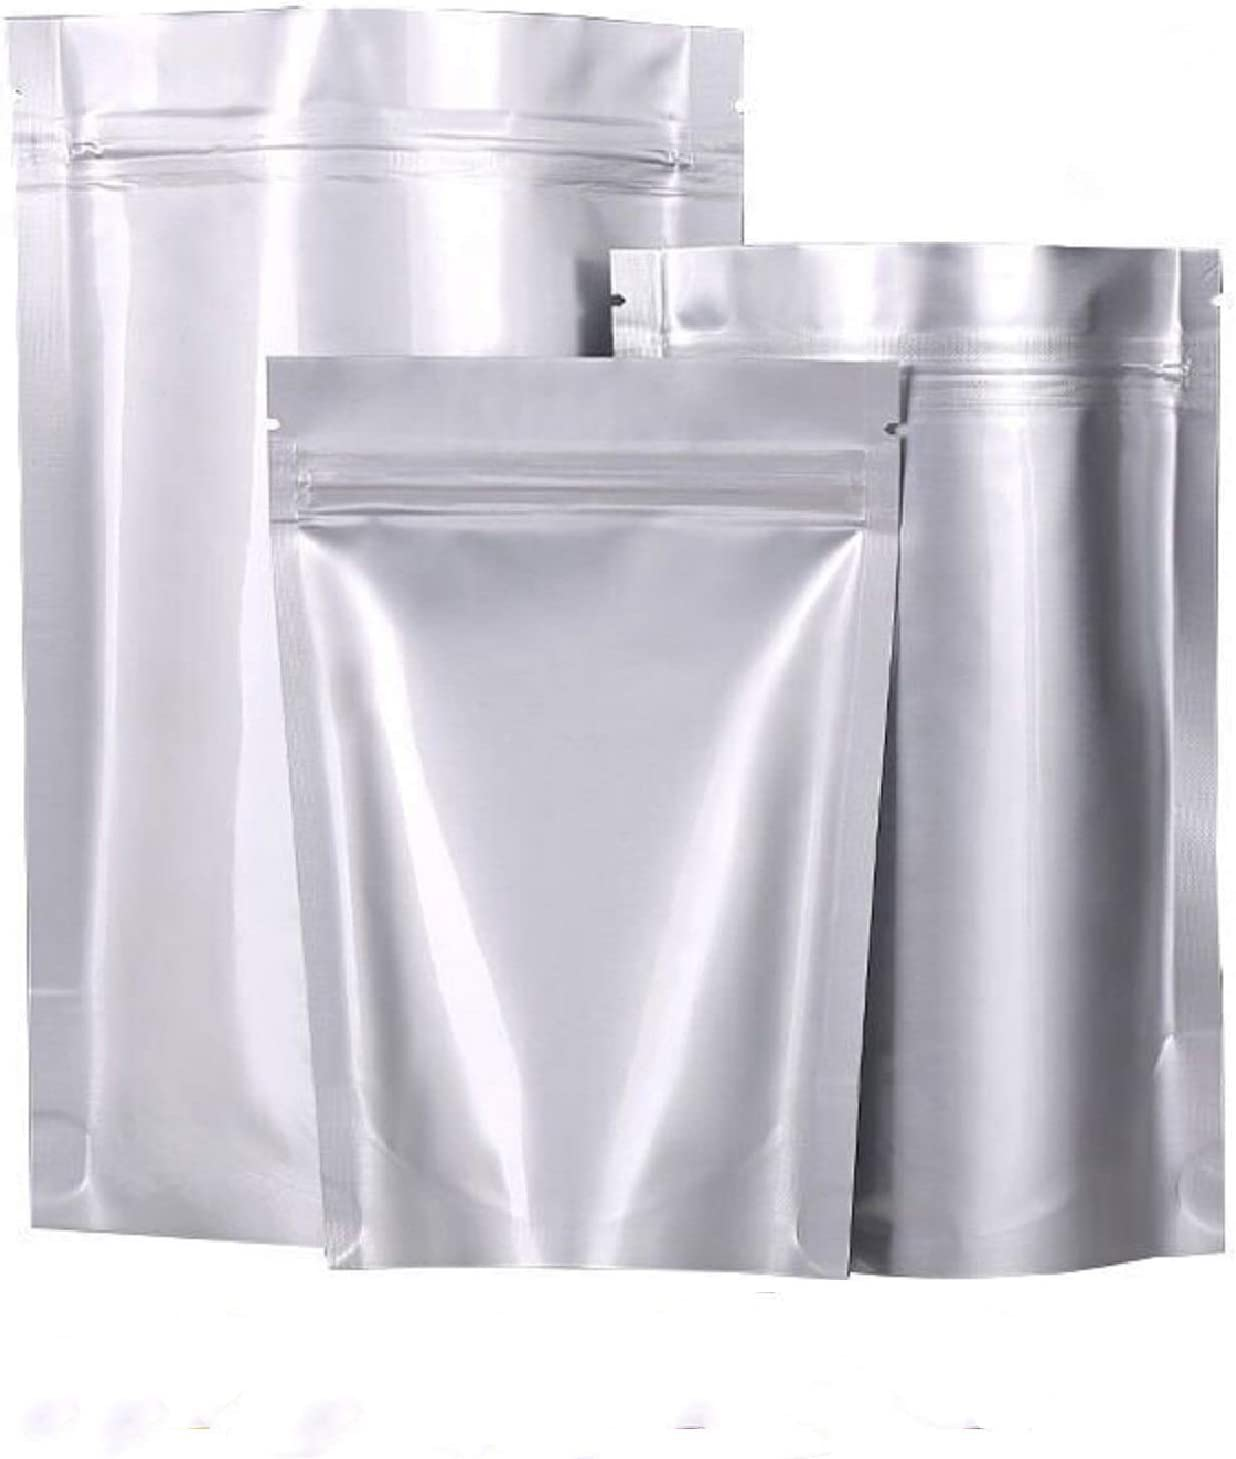 Resealable Mylar Bags 3 Sizes 30 Pack, Reclosable Foil Ziplock Bags, Upgraded Mylar Aluminum Foil Zipper Heat Seal Bags, Stand Up Food Storage Bags Pouch for Coffee Tea Beans Candy Nuts Cookies